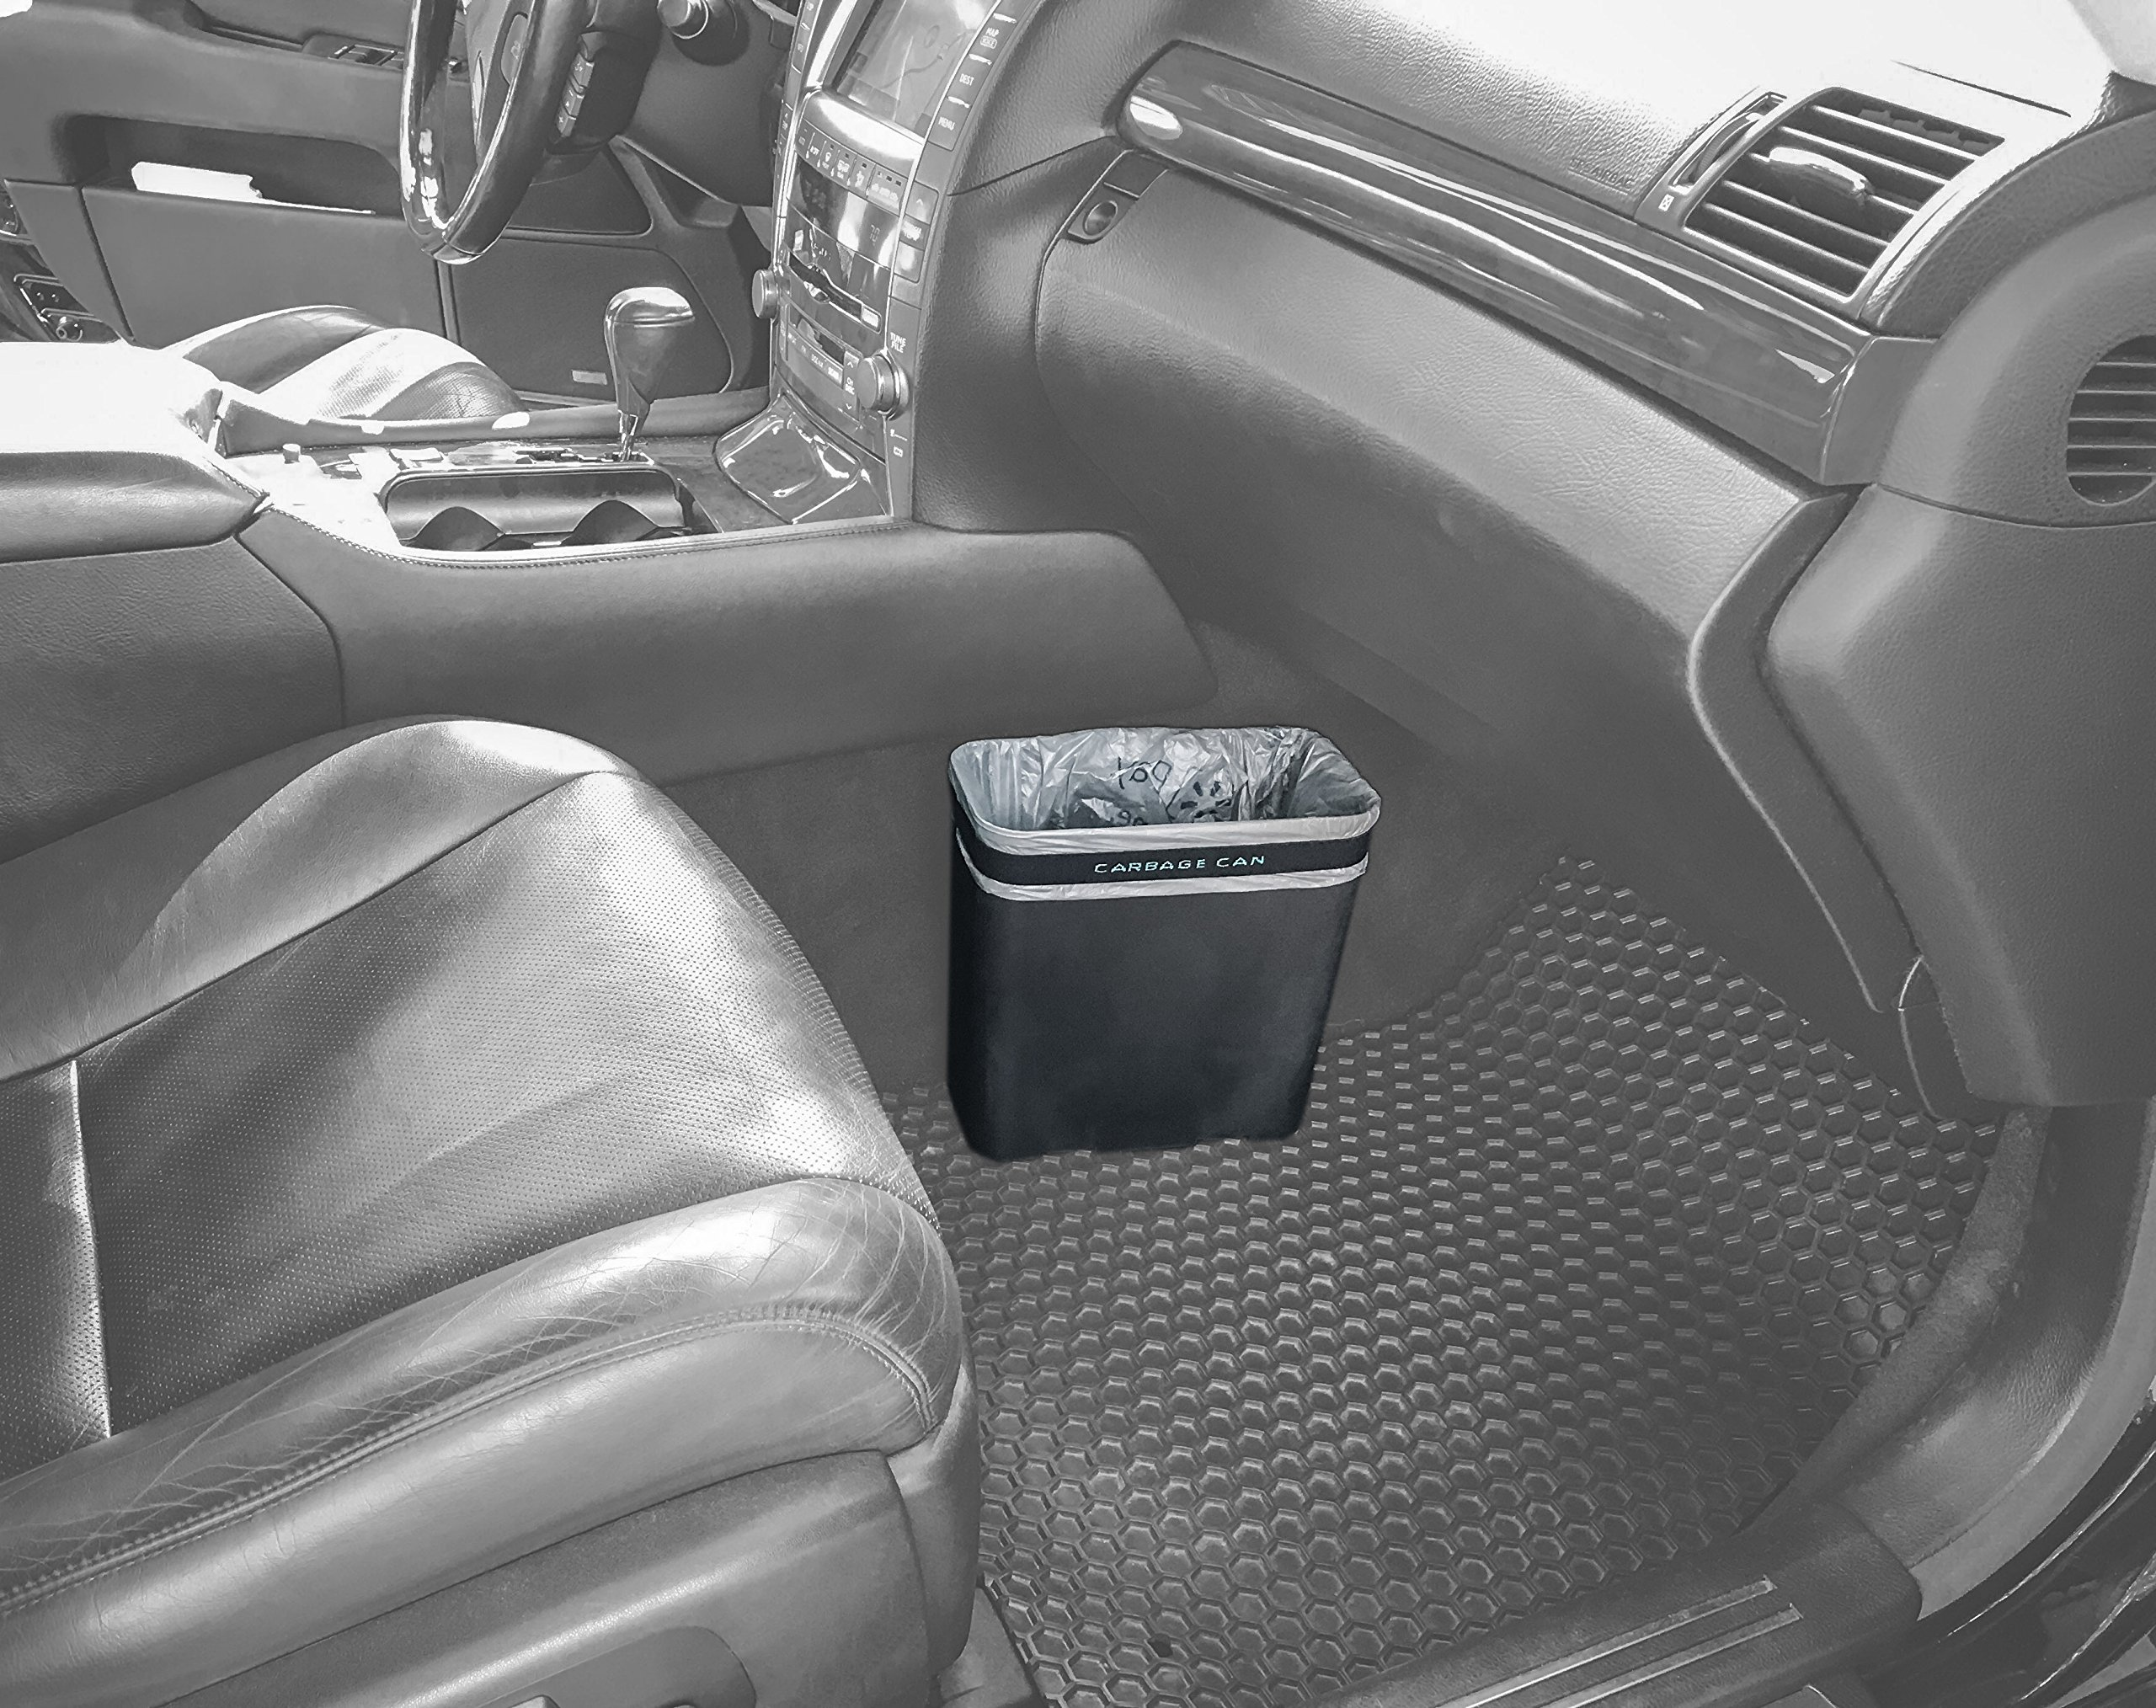 2 Pack - Carbage Can Car Trash Can Garbage Can by Carbage Can (Image #6)